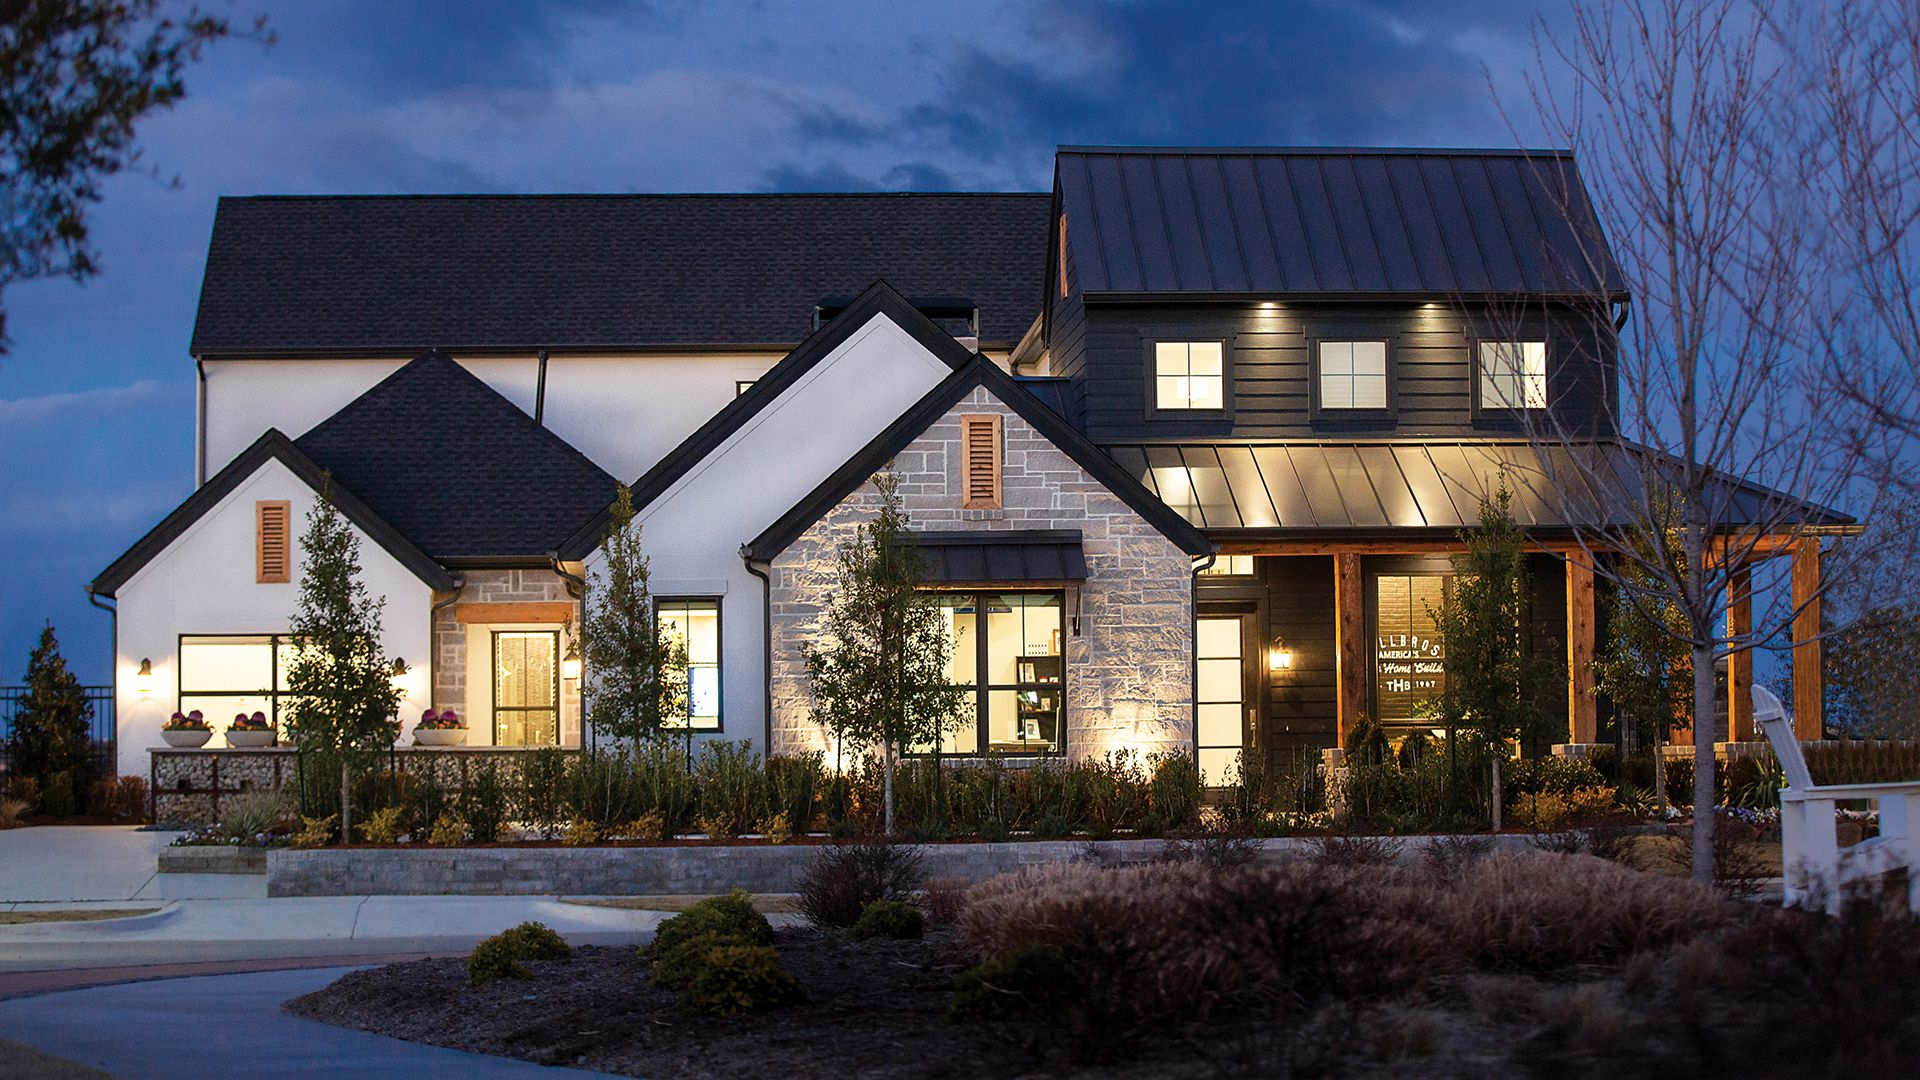 Texas homes for sale by Toll Brothers®. New home designs